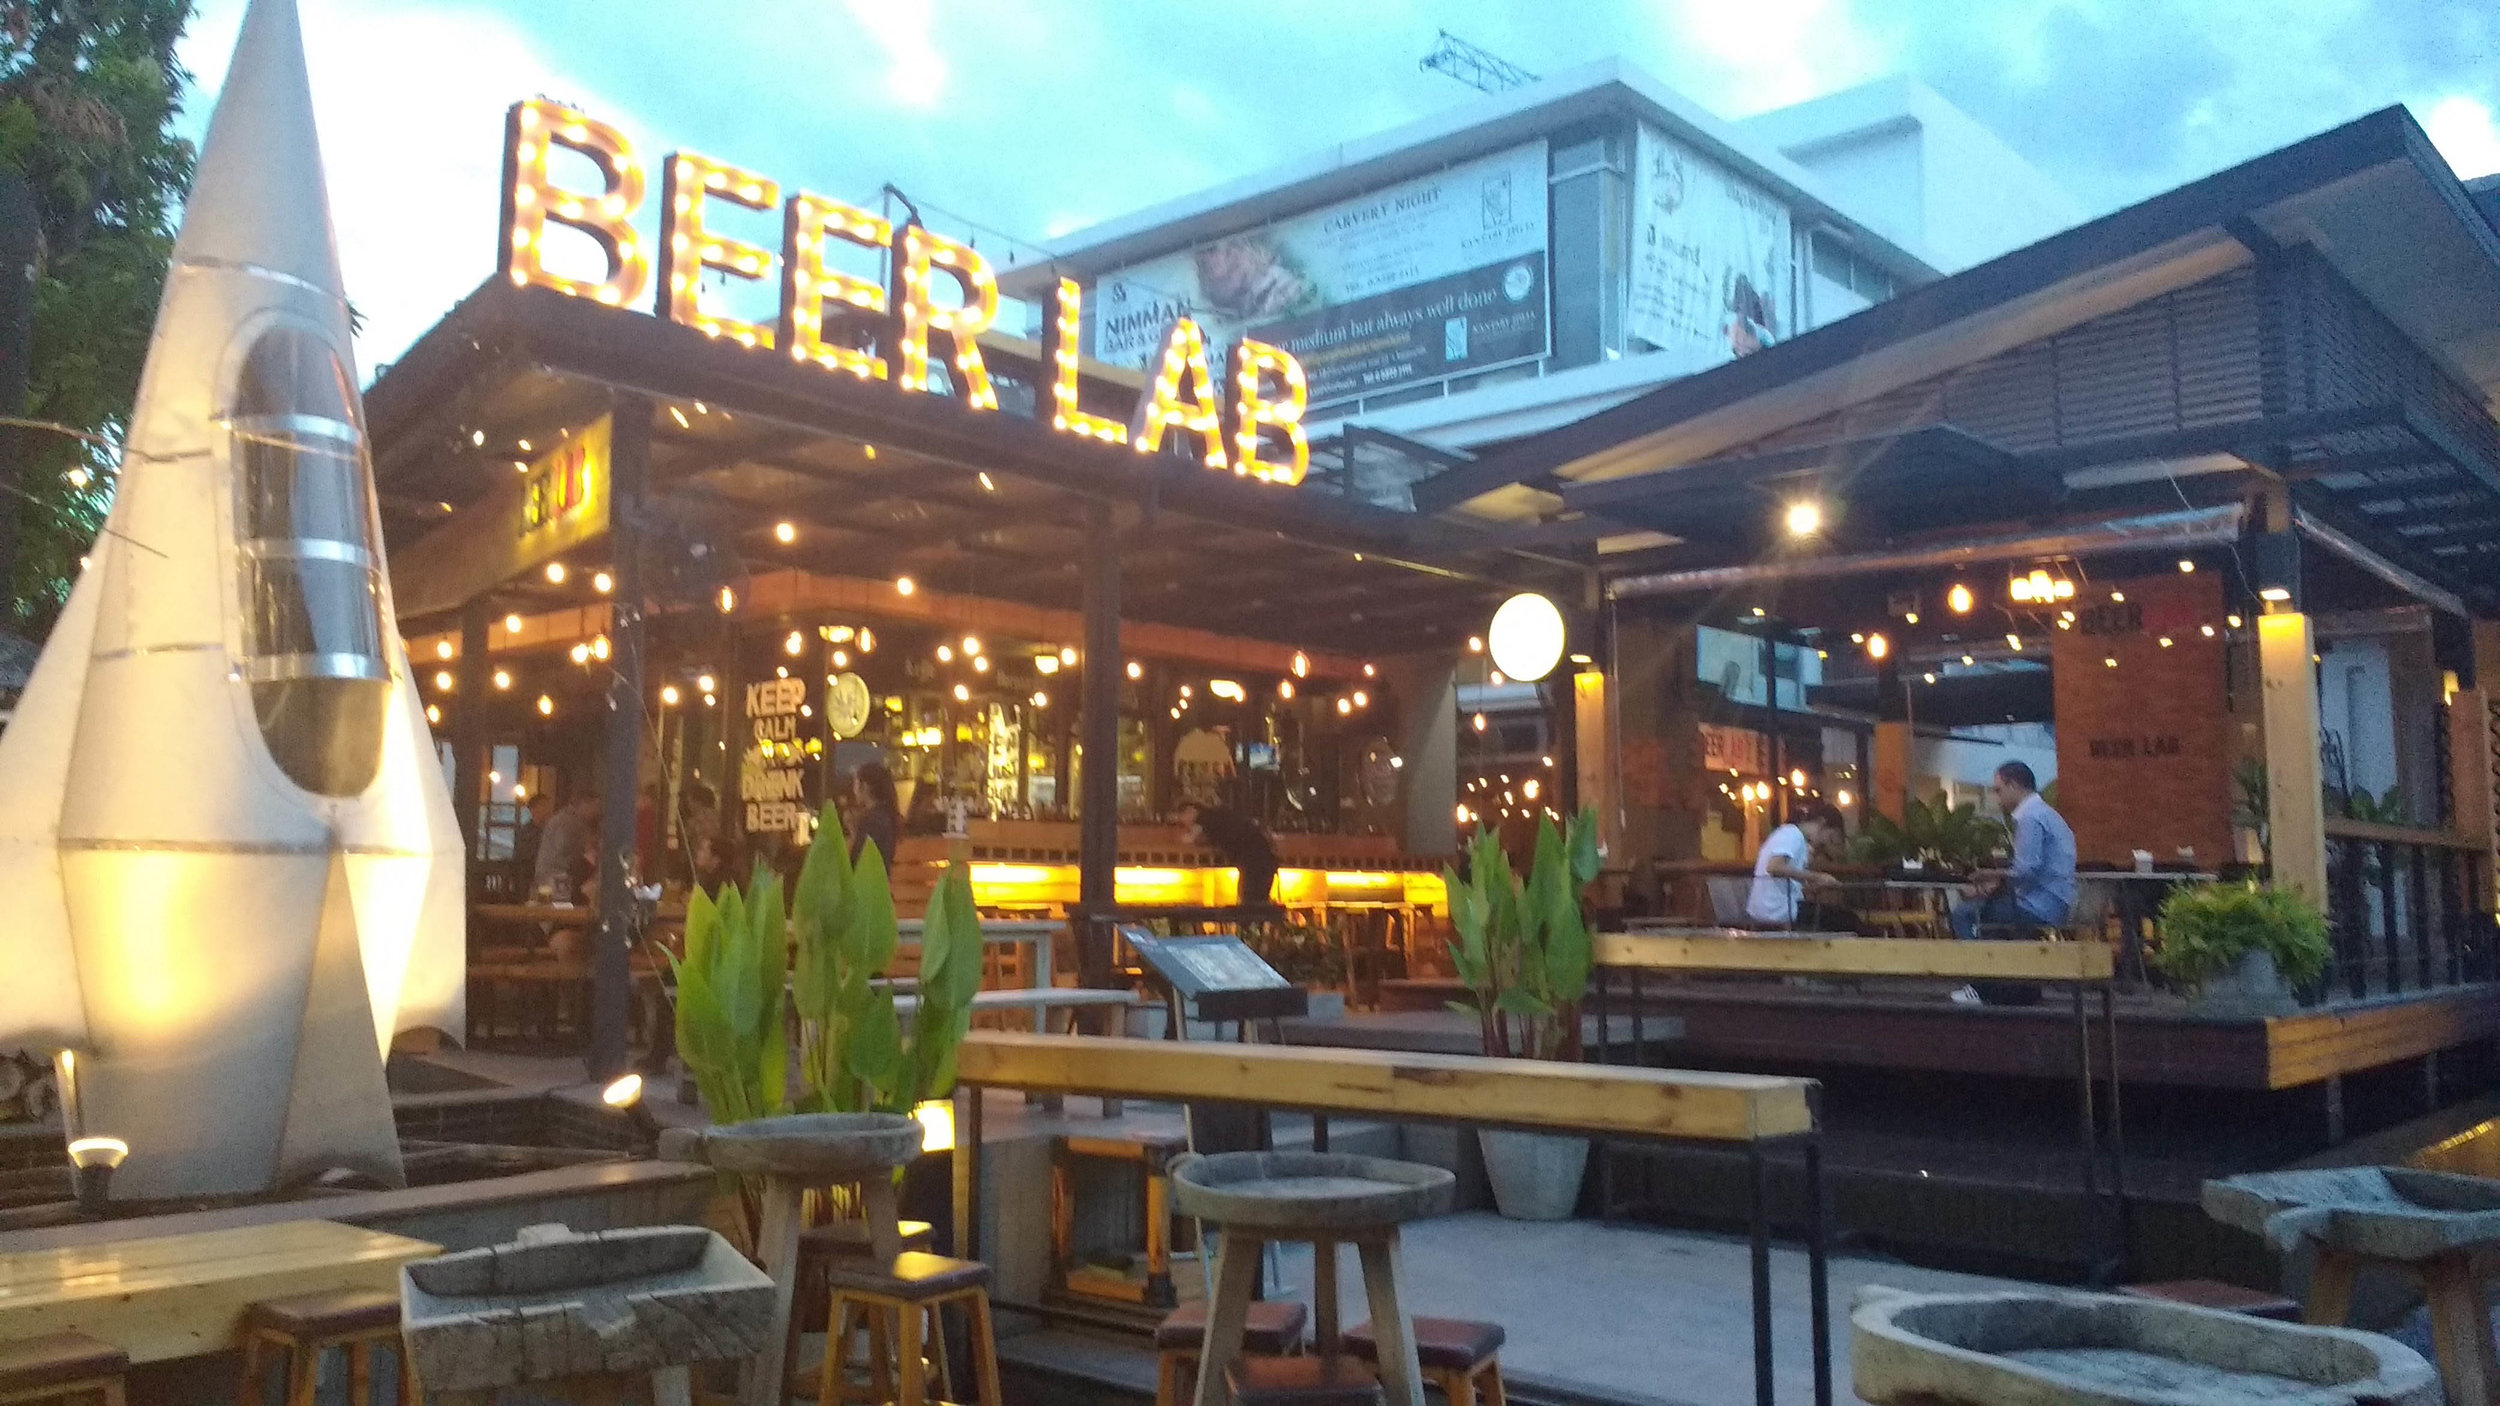 Hipster Beer Bar in Chiang Mai, Thailand